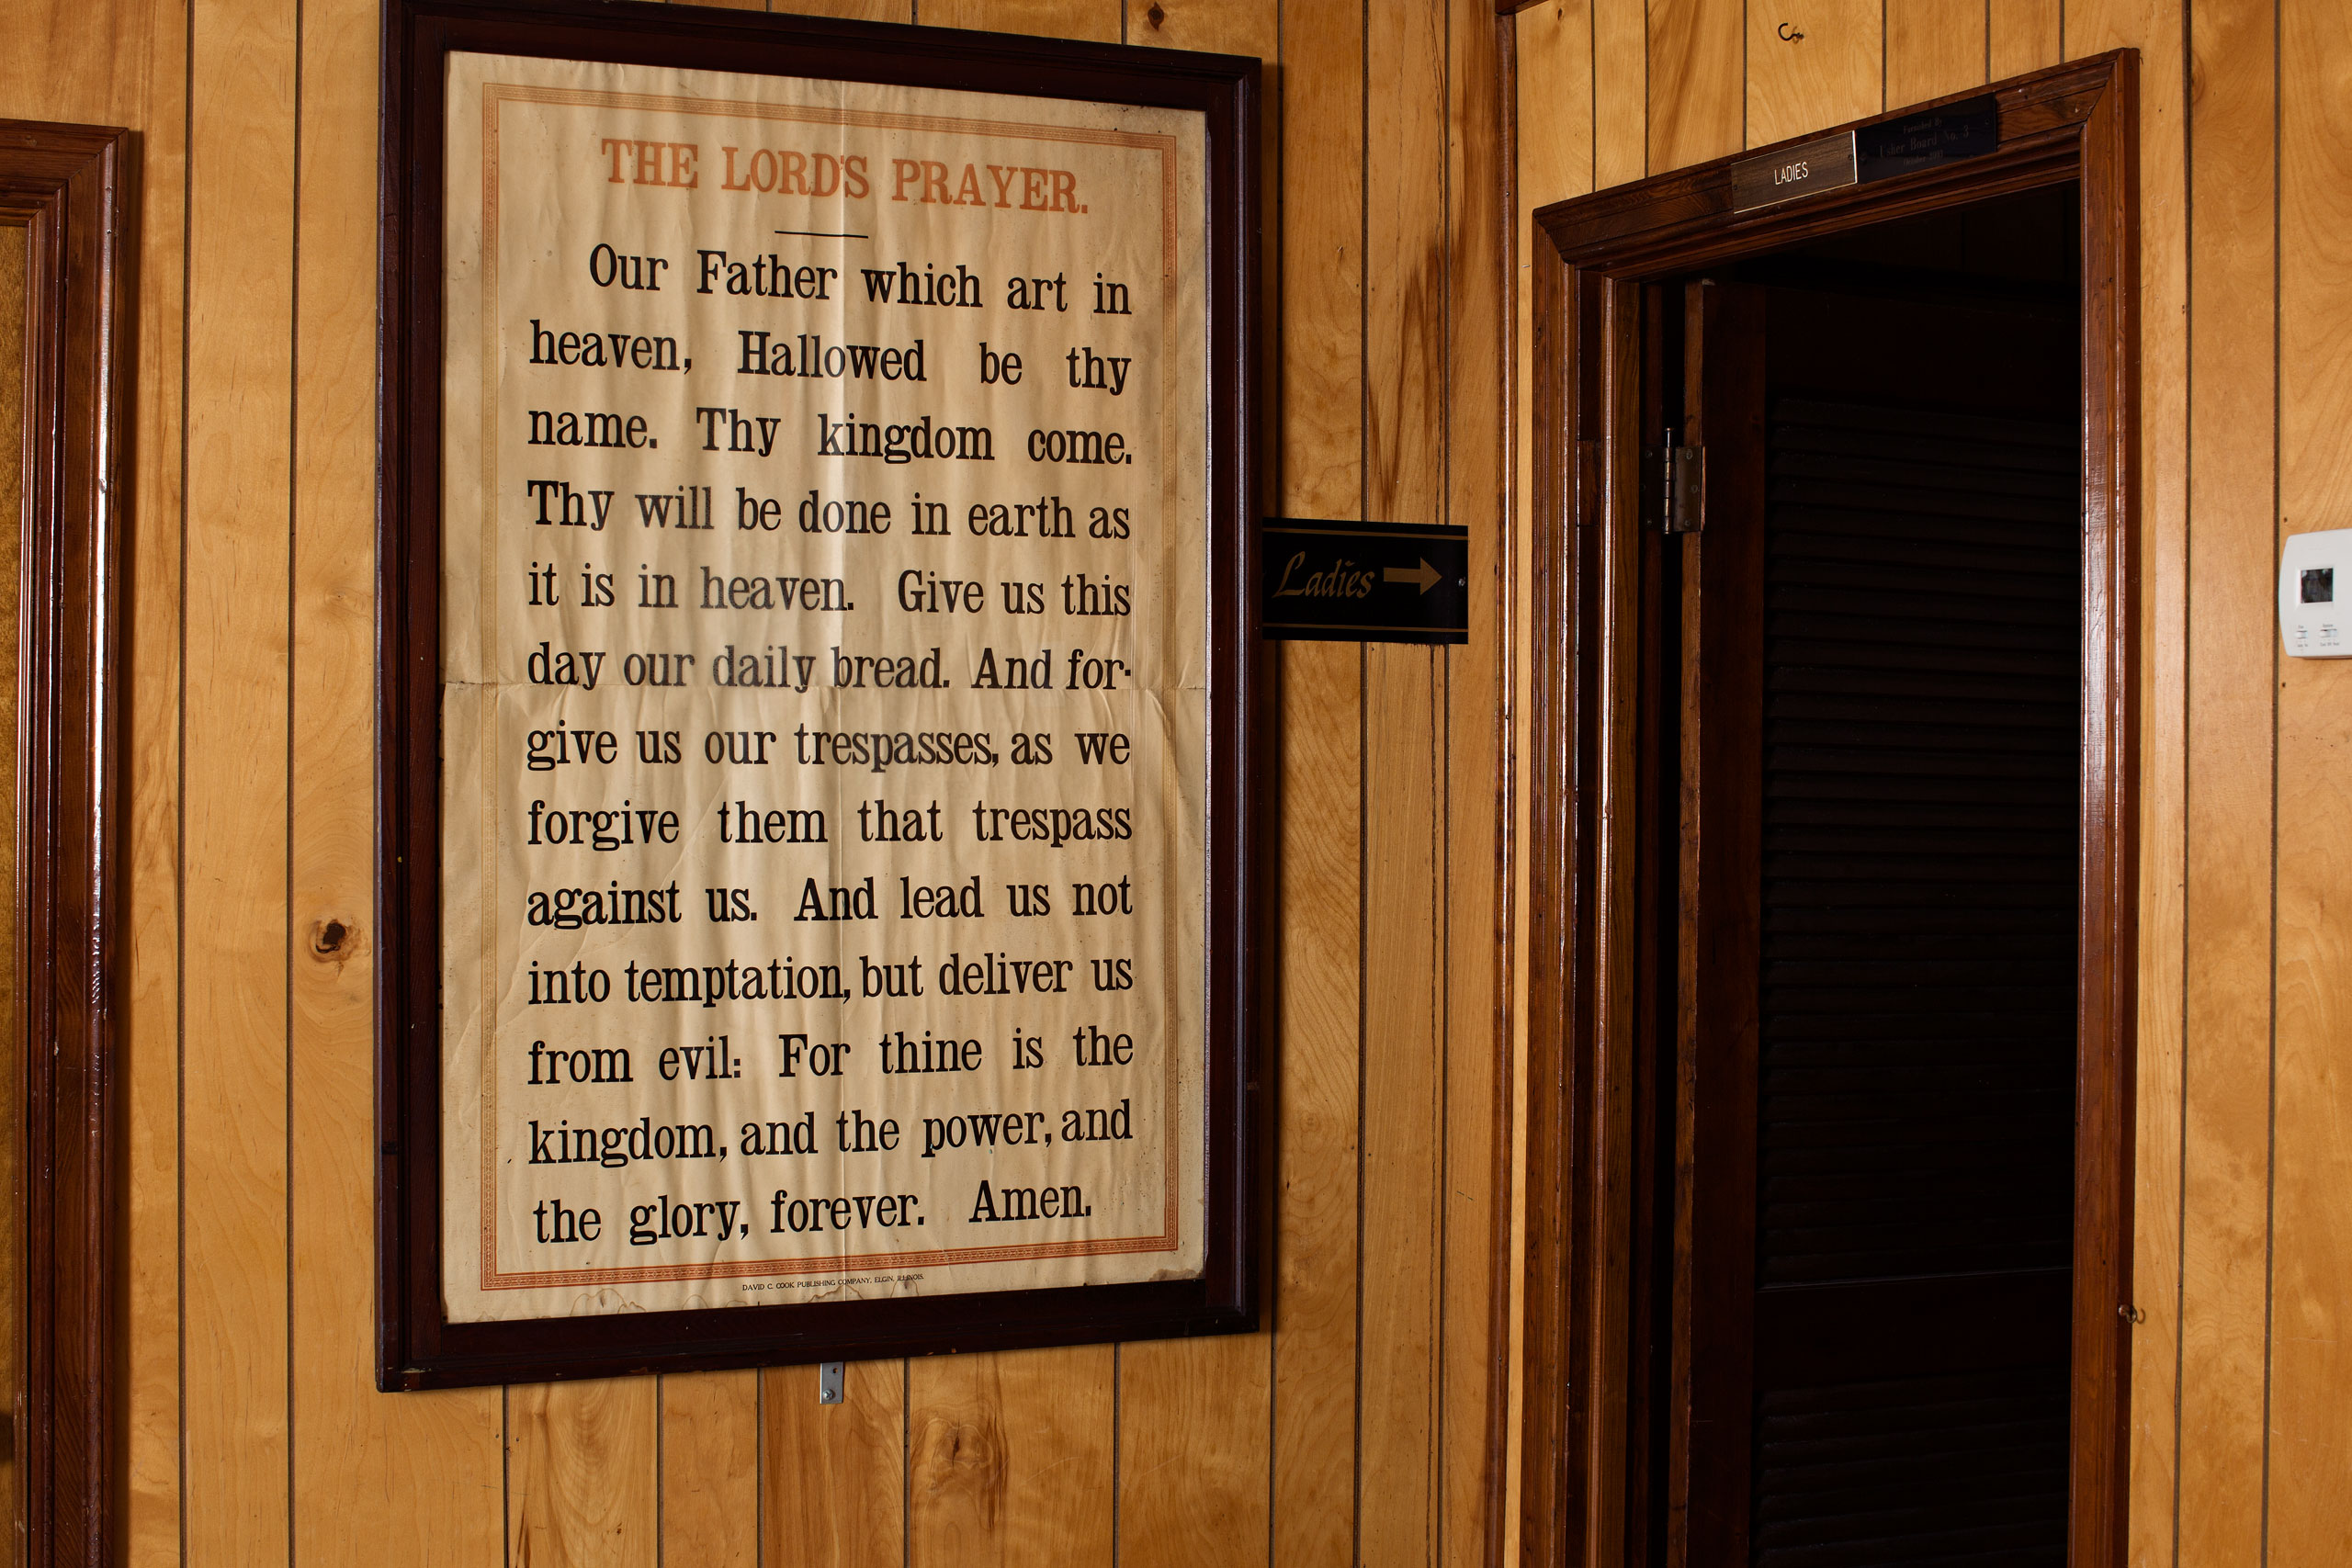 The Lord's Prayer hangs on a wall inside Mother Emanuel